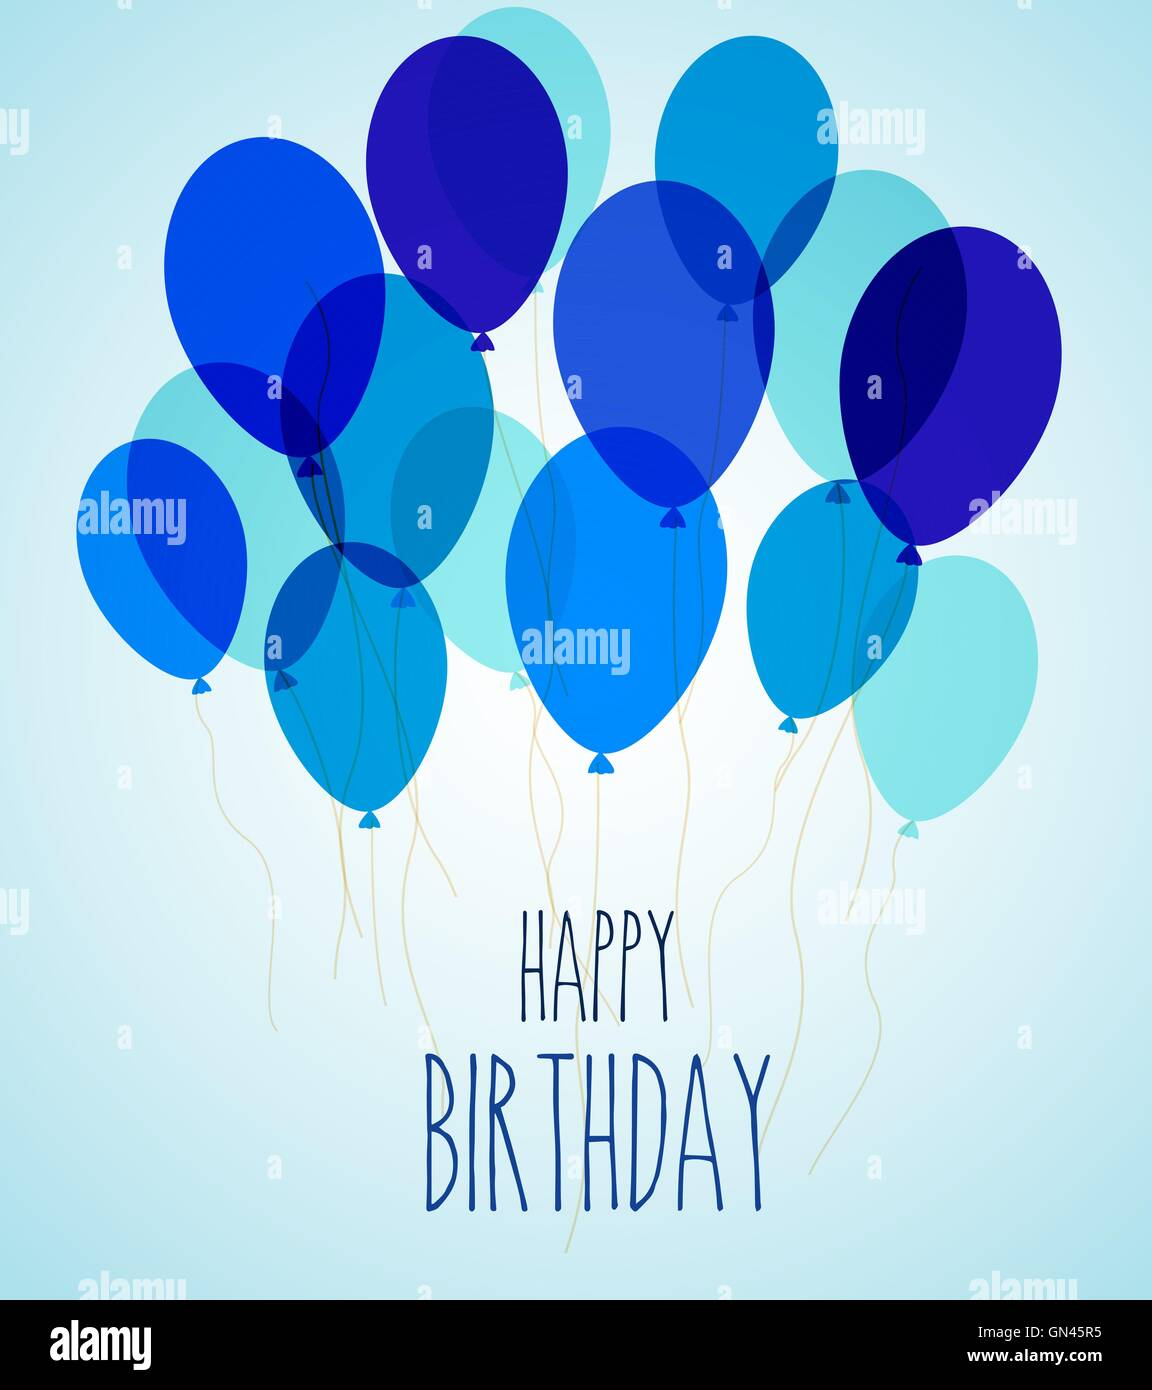 Birthday party balloons in blue - Stock Image